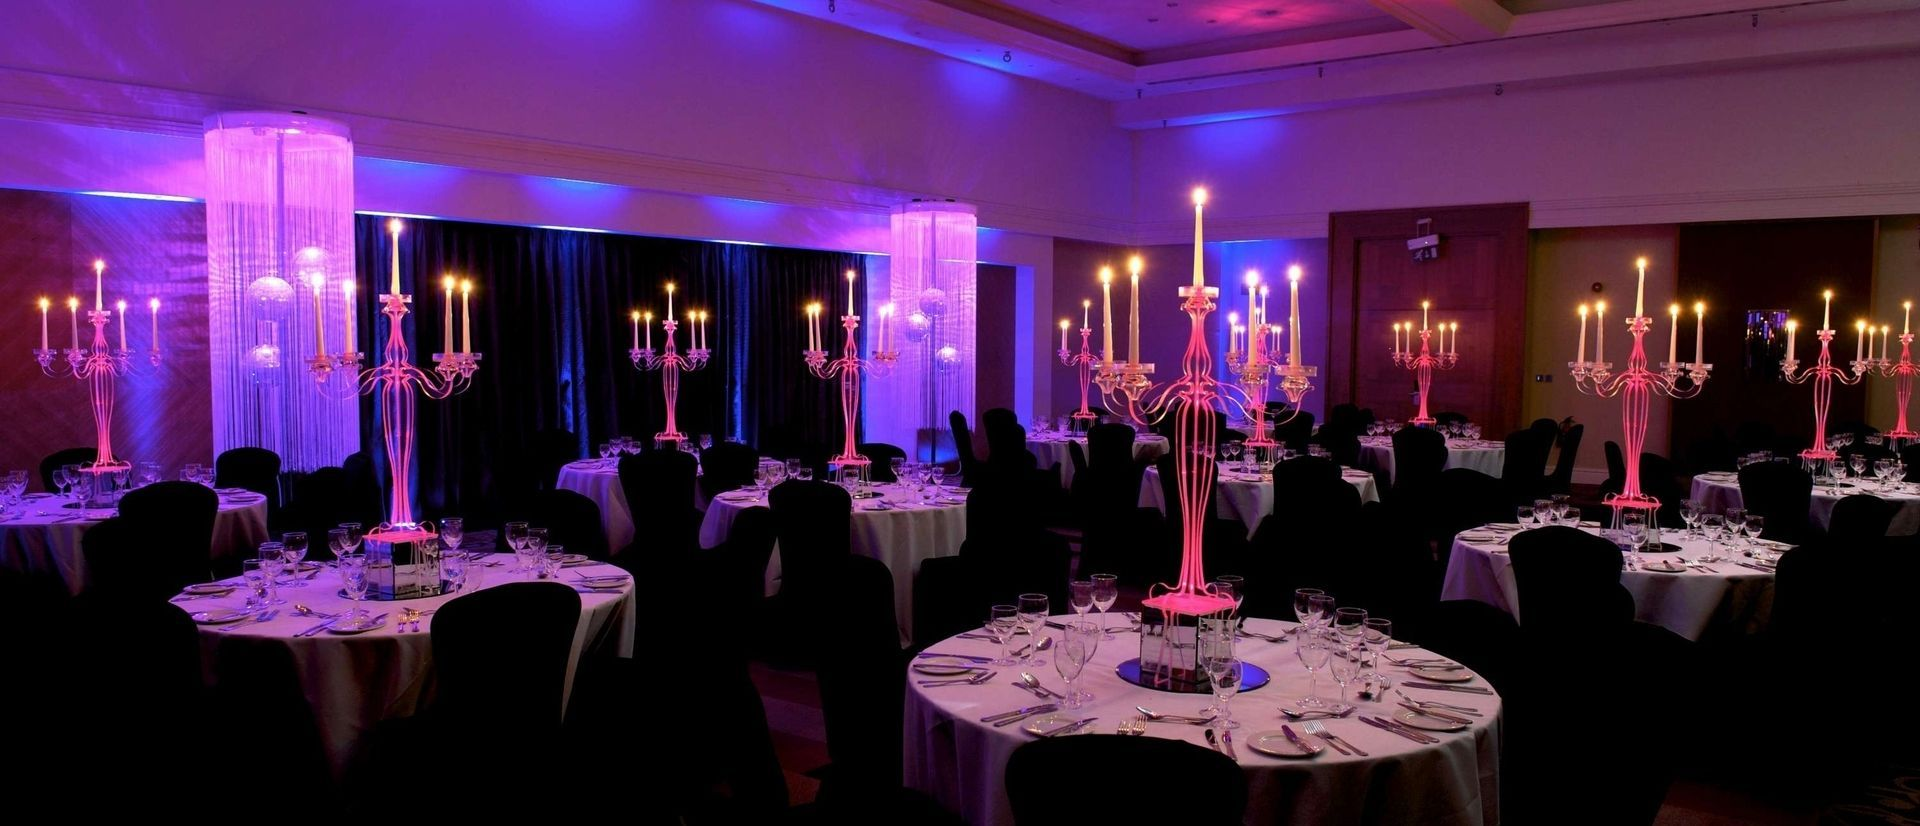 Table Centre | Table Centres | Table Centrepieces ...